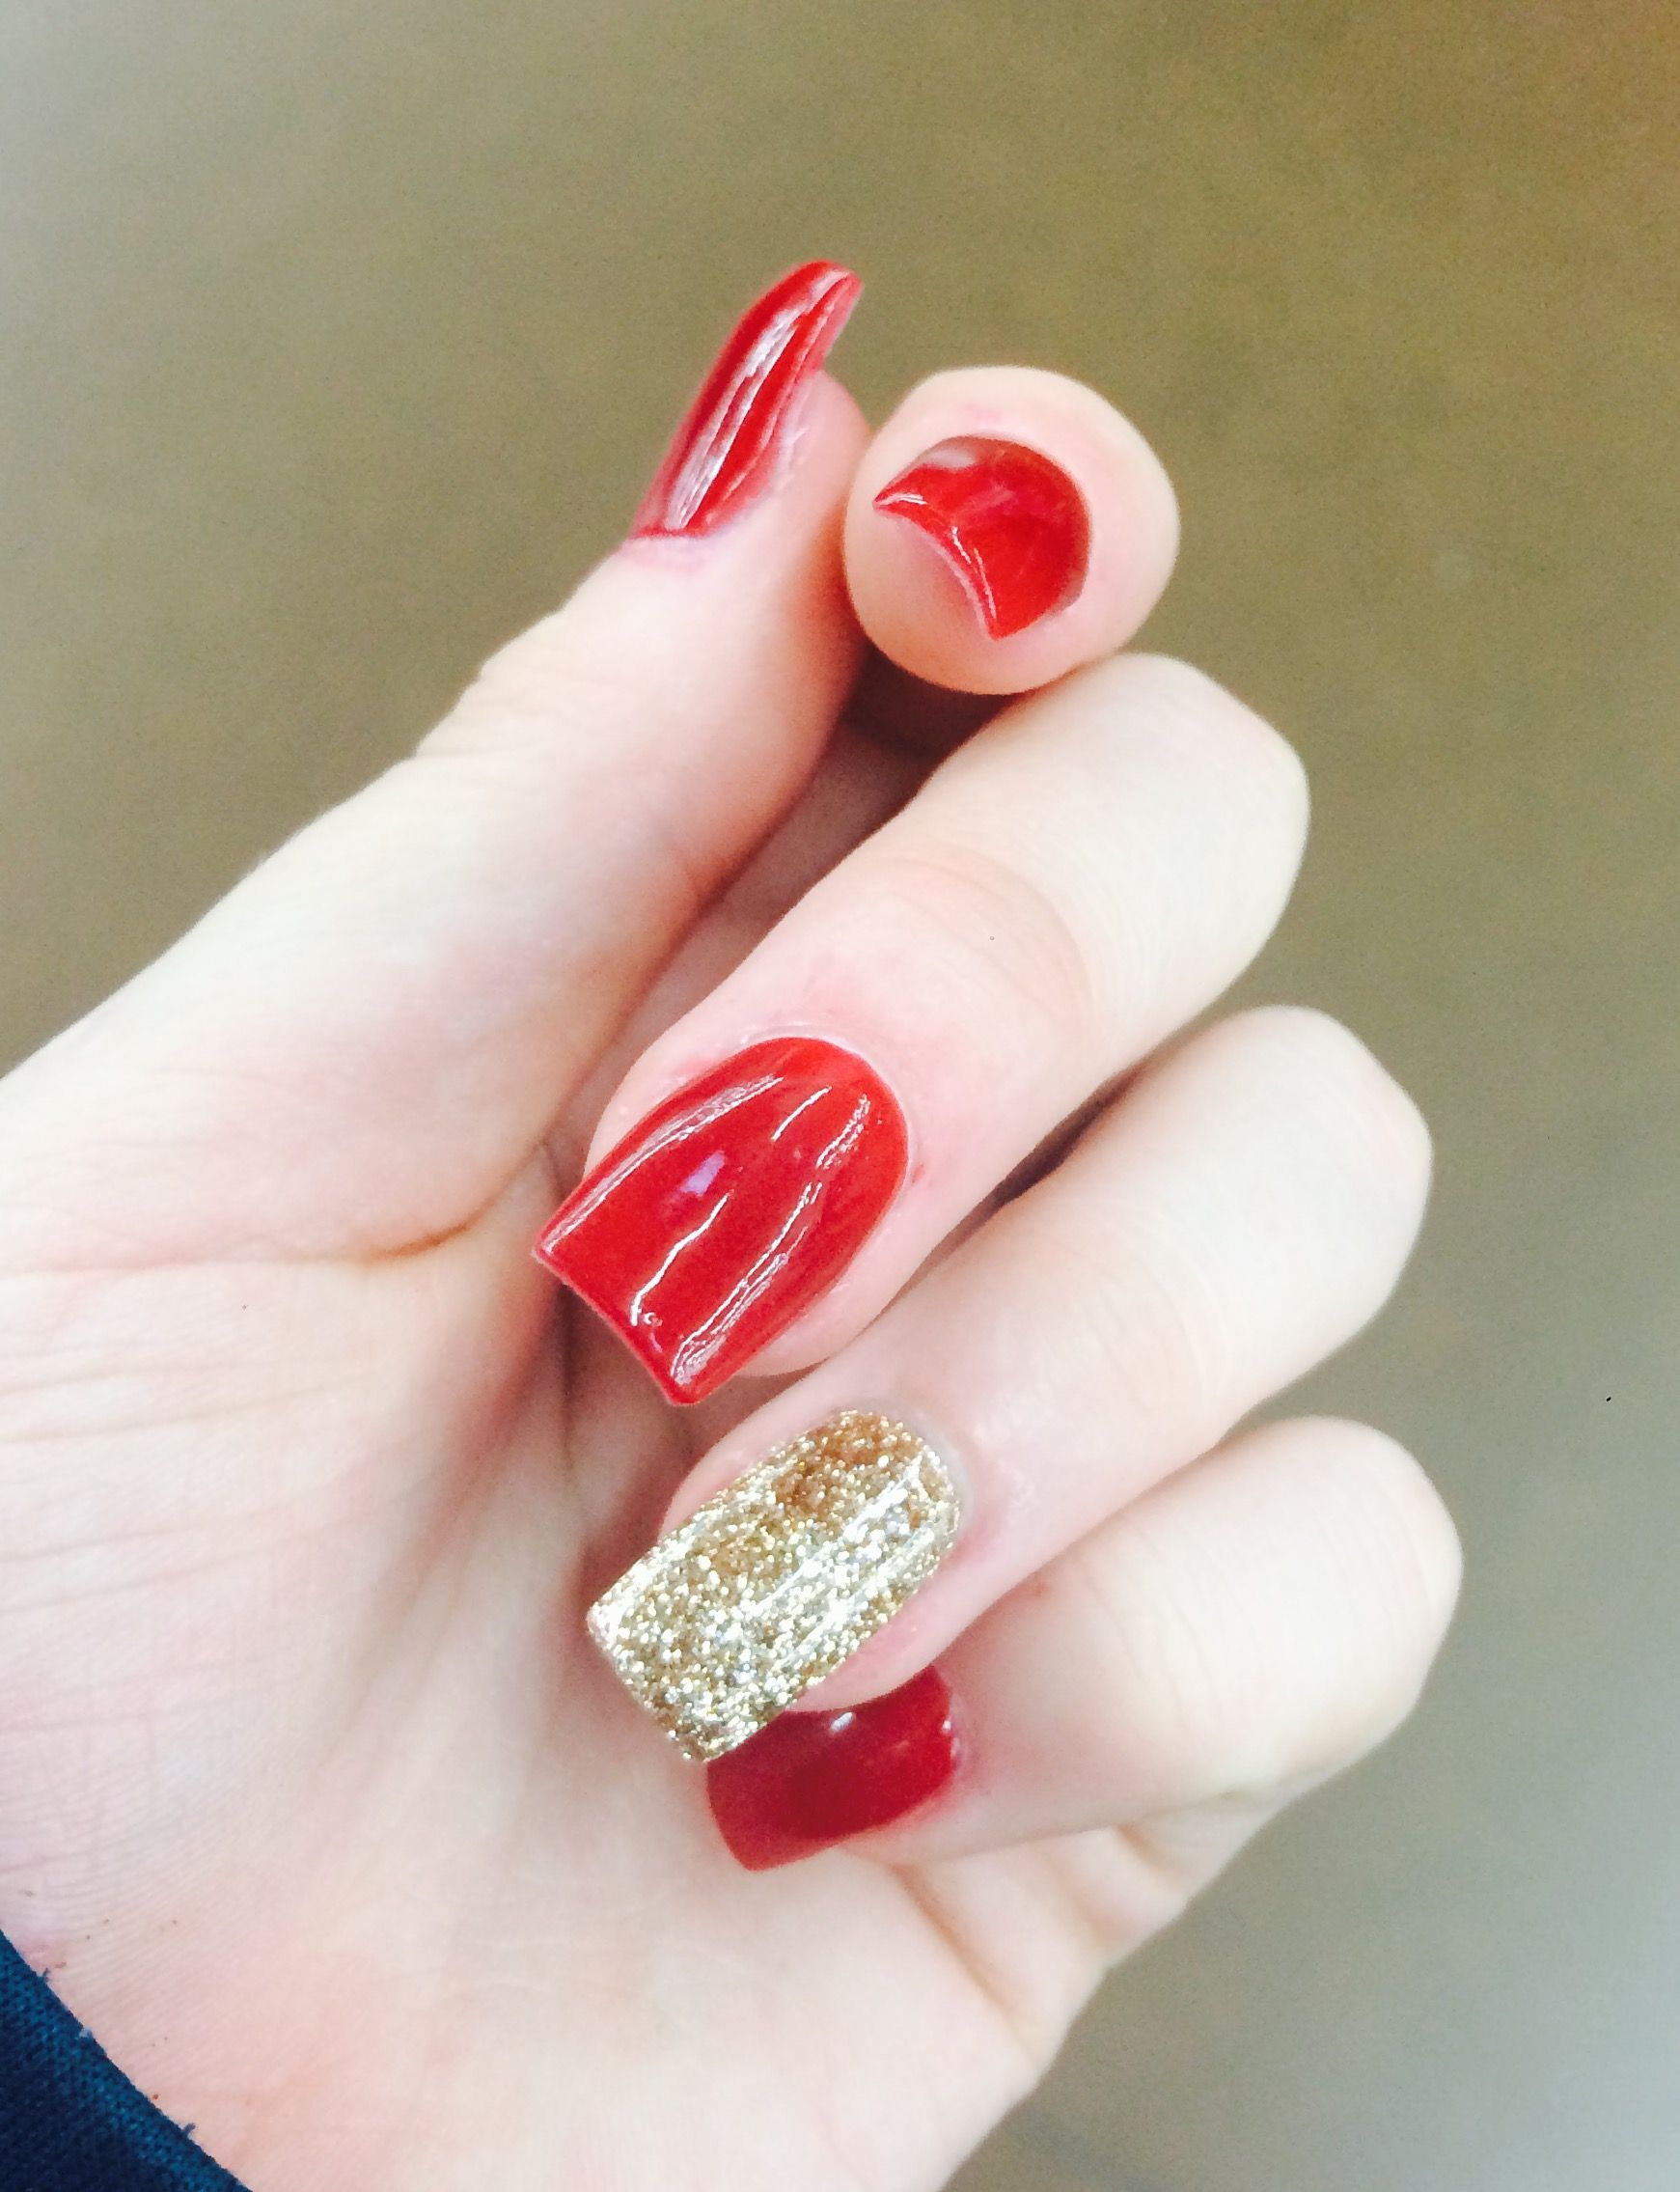 Red and gold nails for prom | Prom dresses and accessories ...